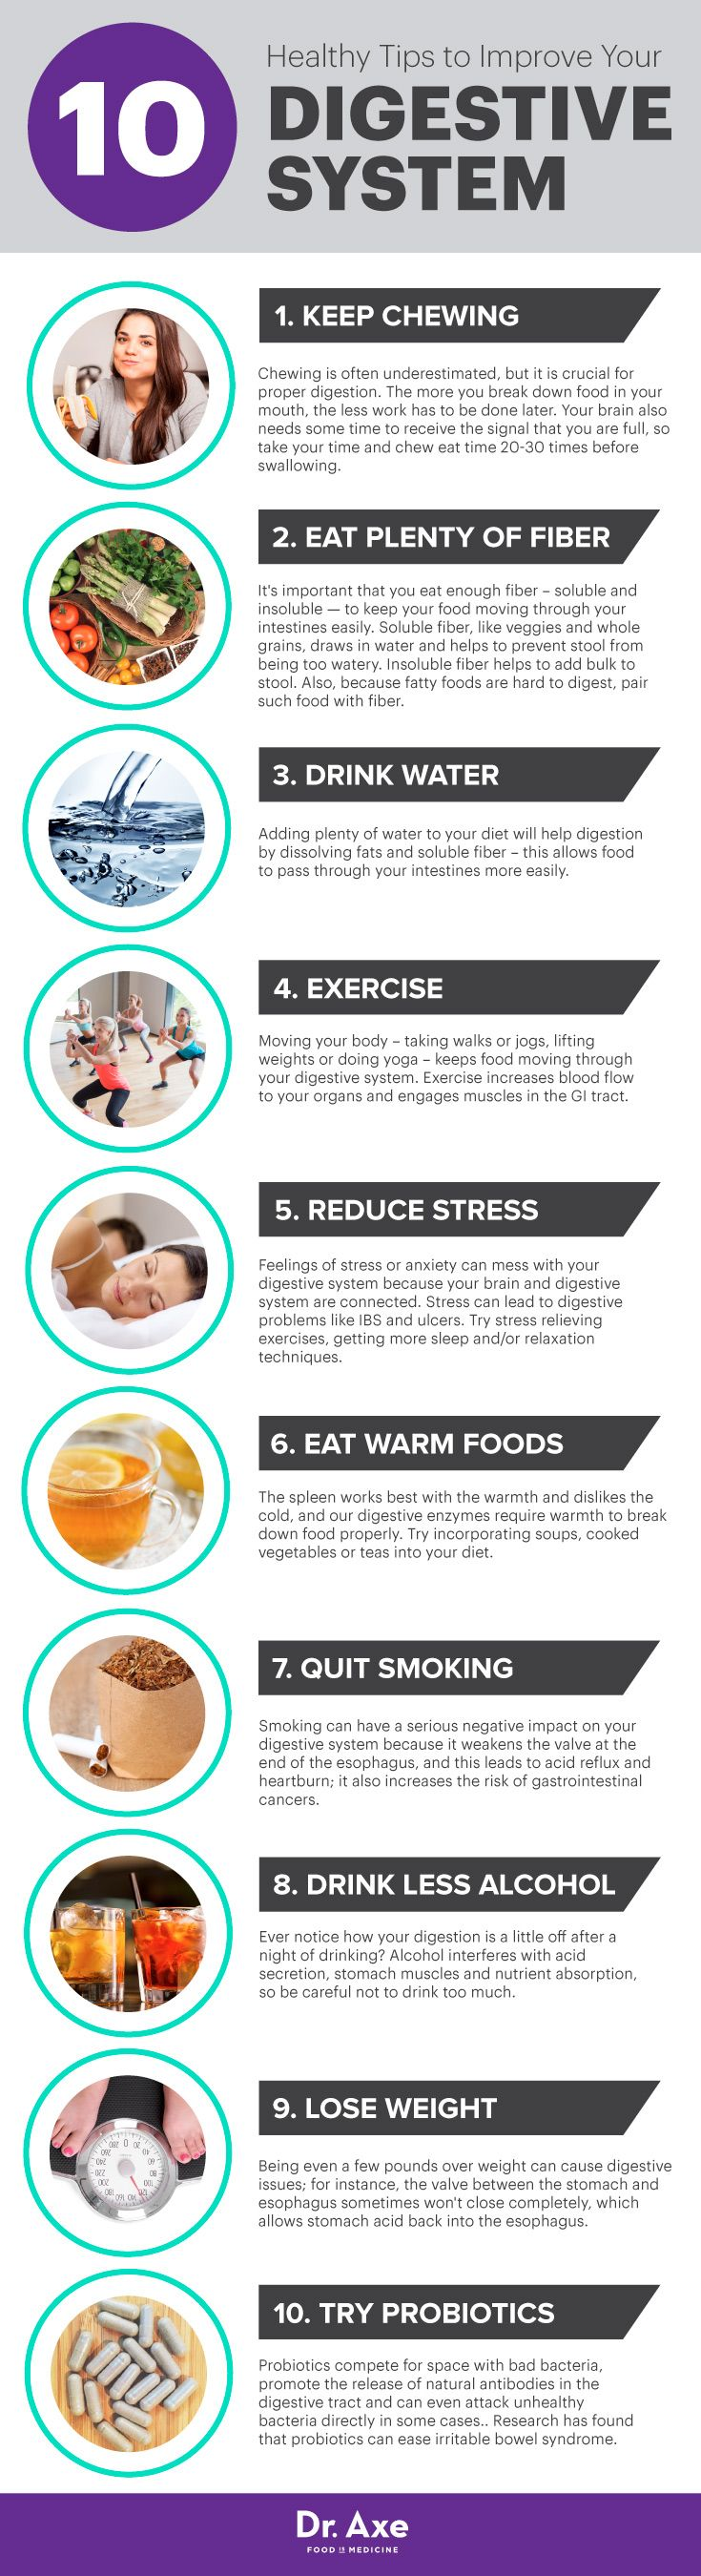 Digestive system tips http://www.draxe.com #health #holistic #natural